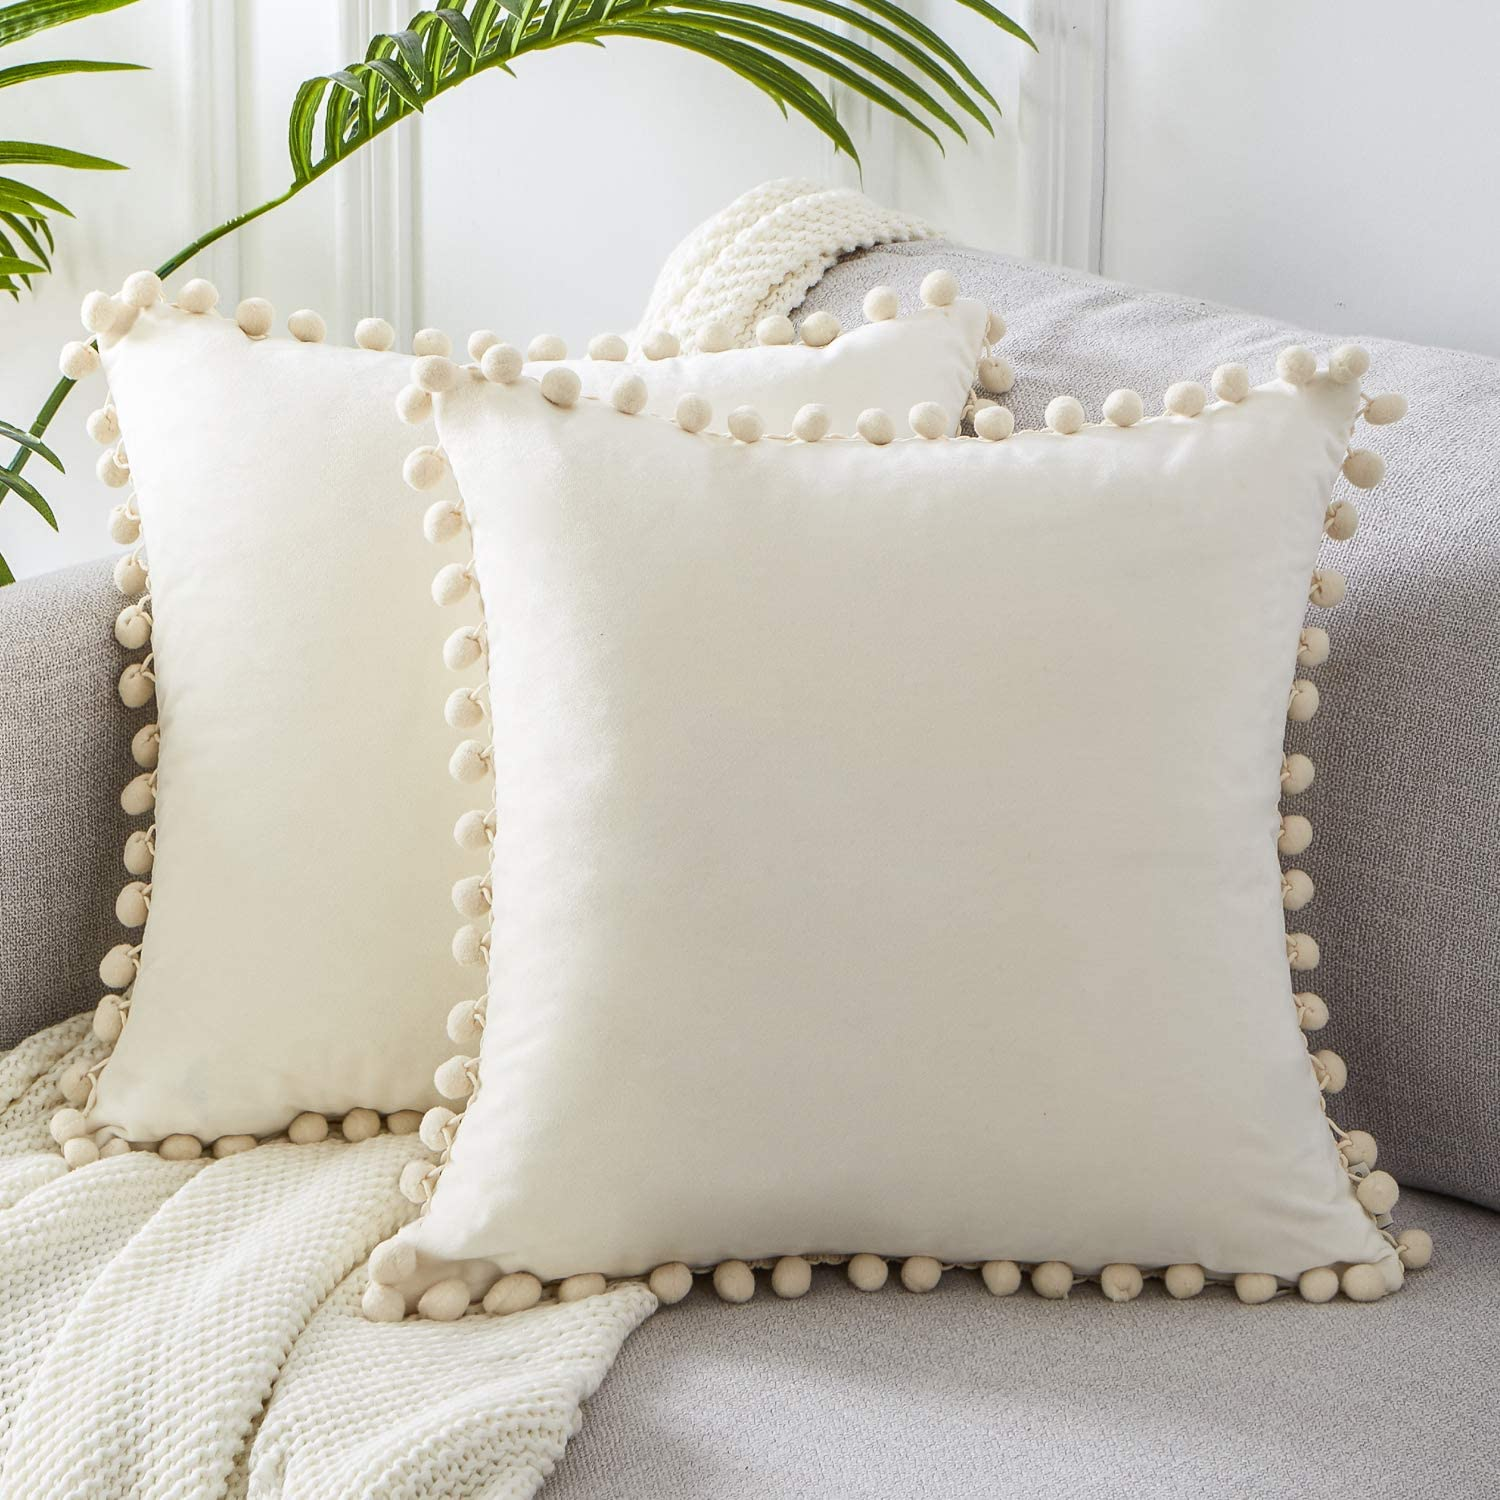 Amazon Home Decor Finds- Pom-pom pillow covers